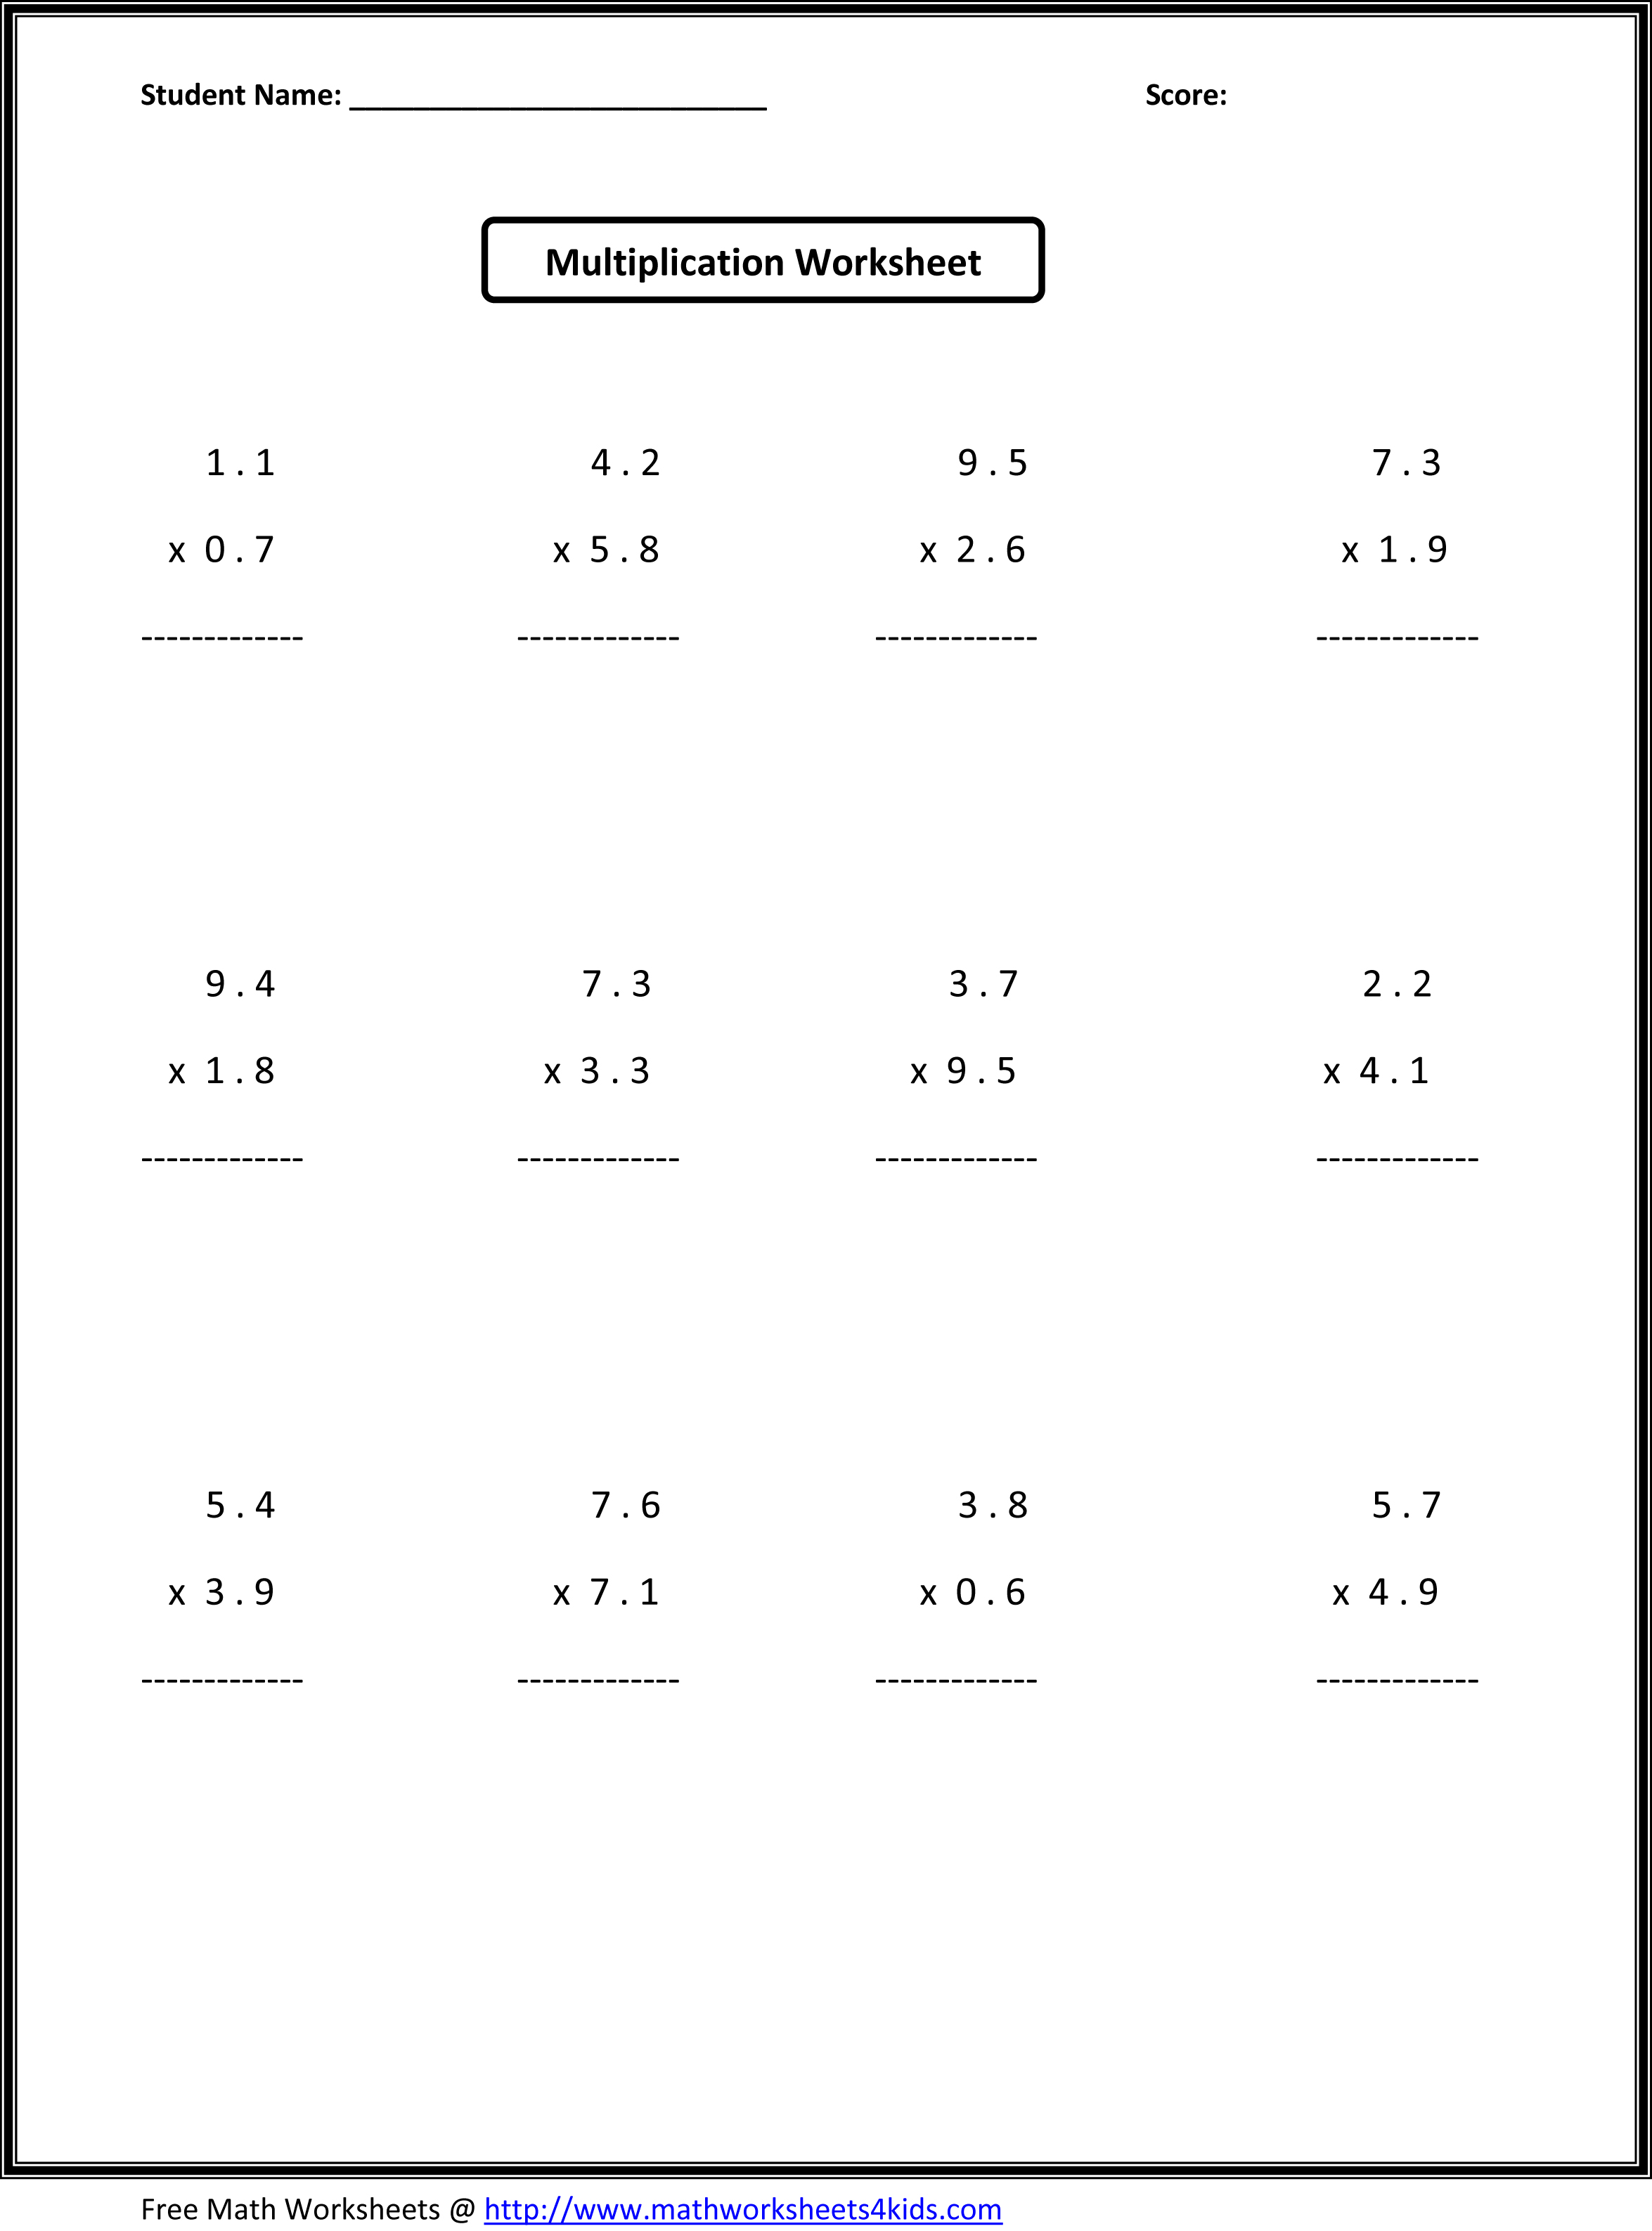 Printables 6th Grade Division Worksheets division worksheets for 6th grade math 2559 value absolute based on basic math